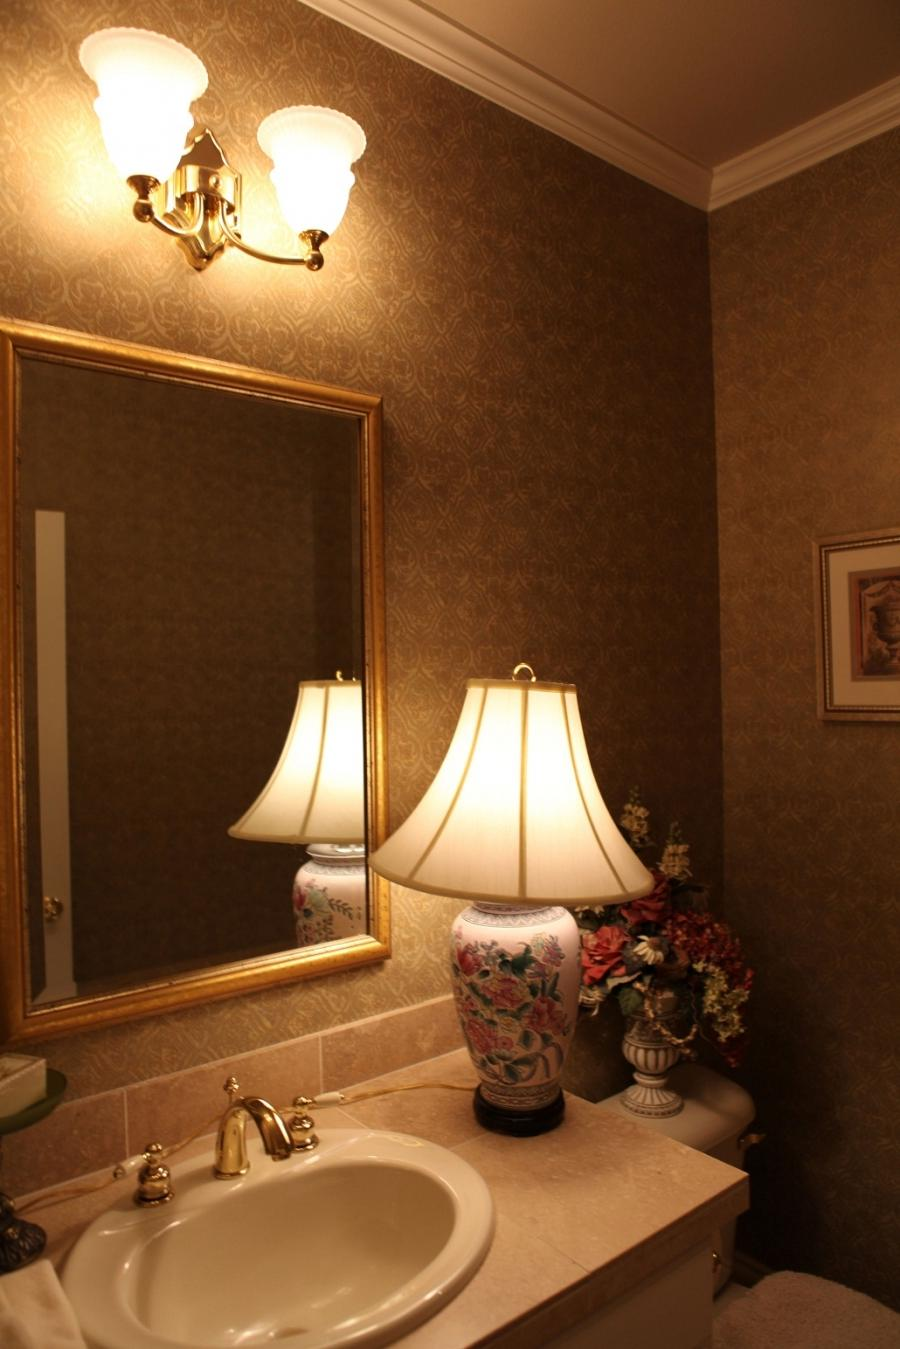 Photos of beautiful powder rooms